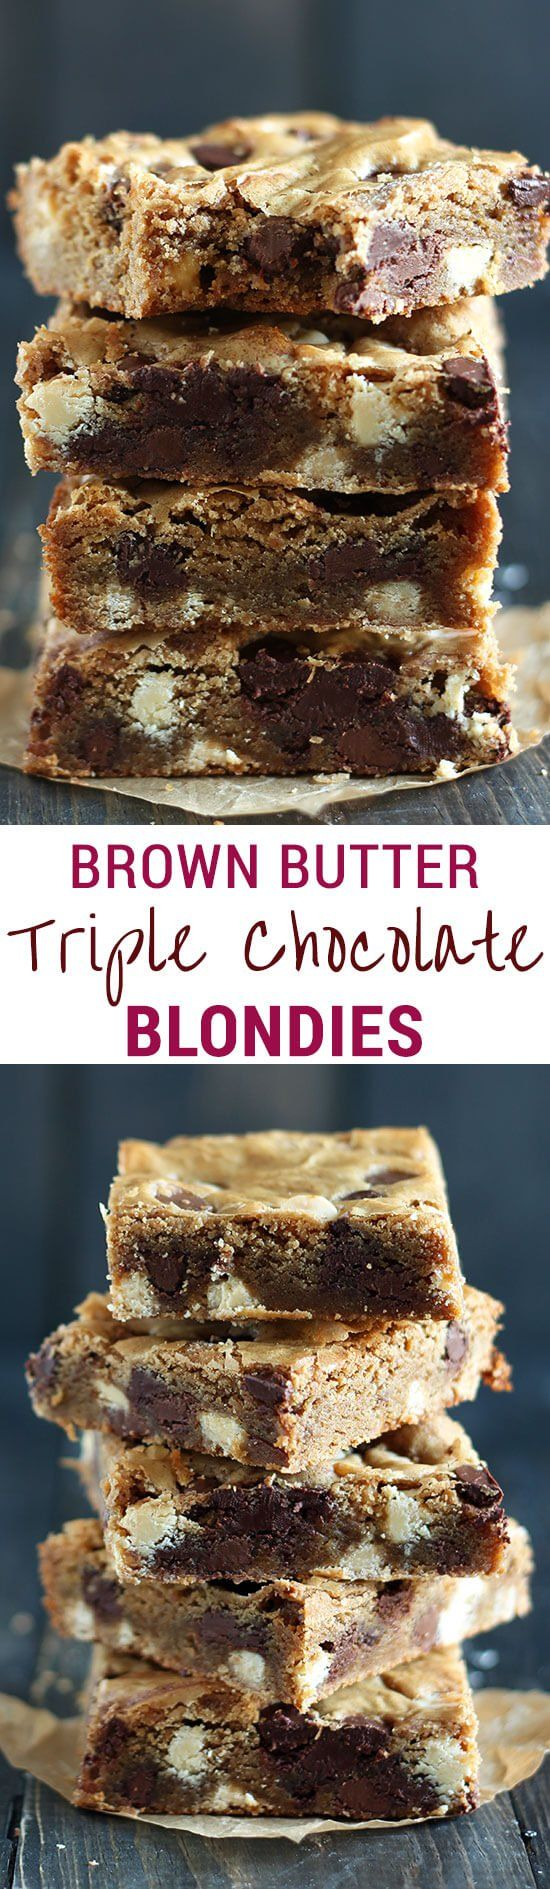 Brown Butter Triple Chocolate Blondies are outrageously chewy with tons of nutty butterscotch flavor and three kinds of chocolate! The best blondies ever!